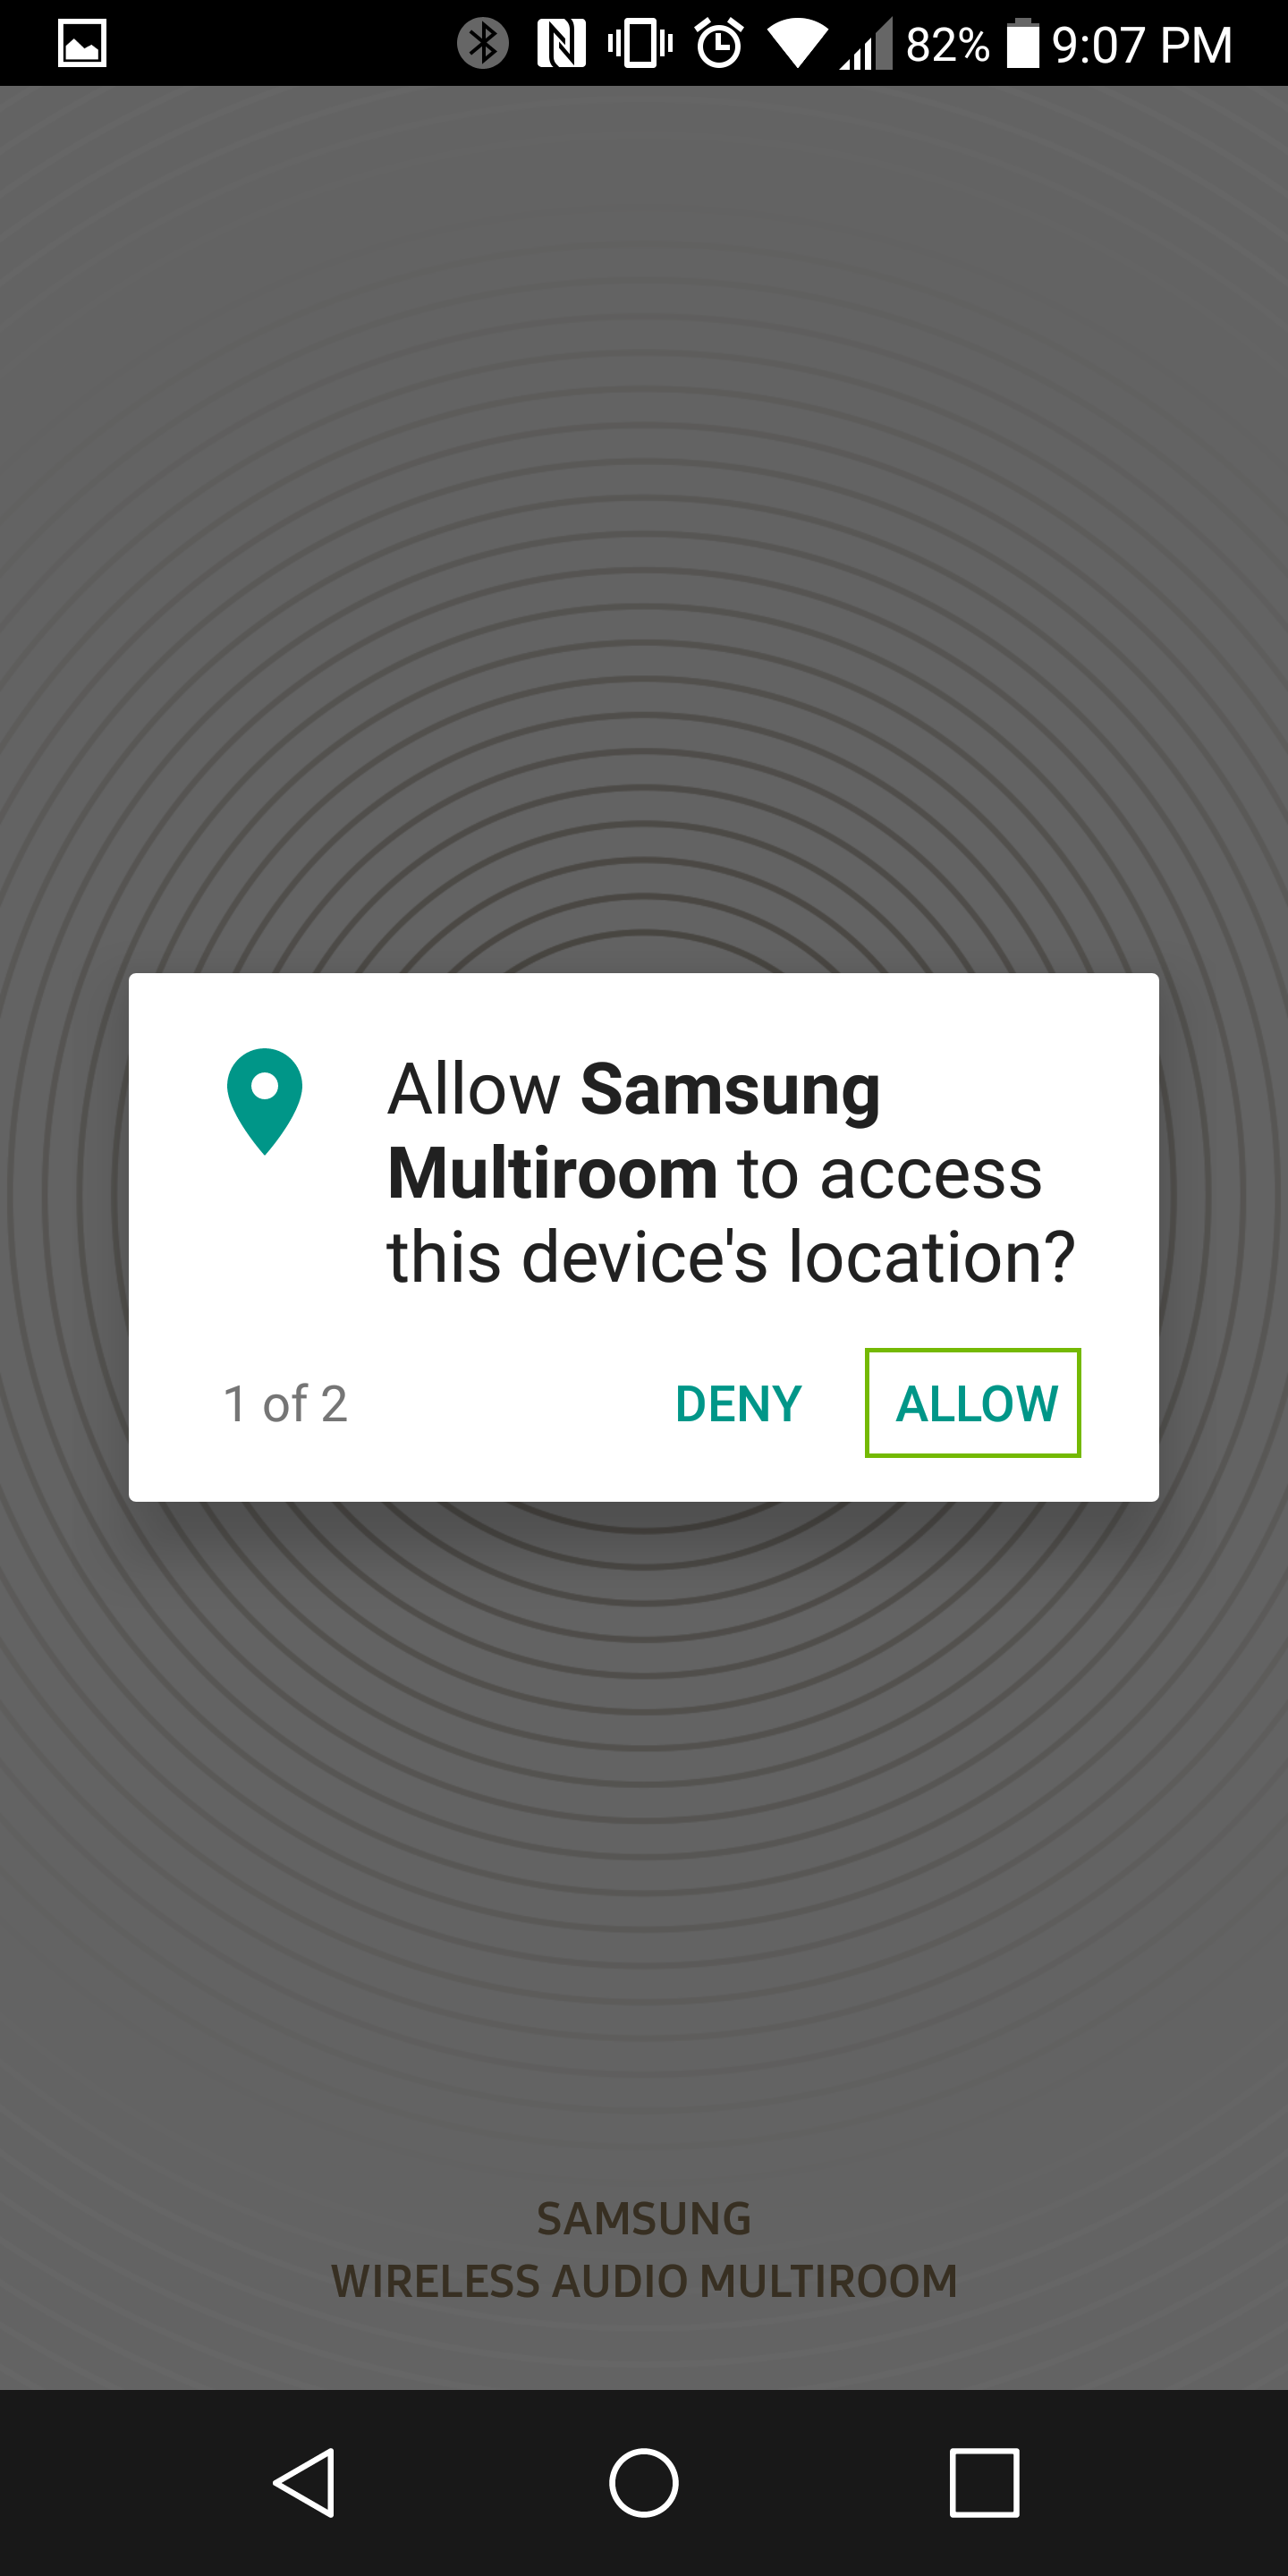 location permissions dialog with allow highlighted